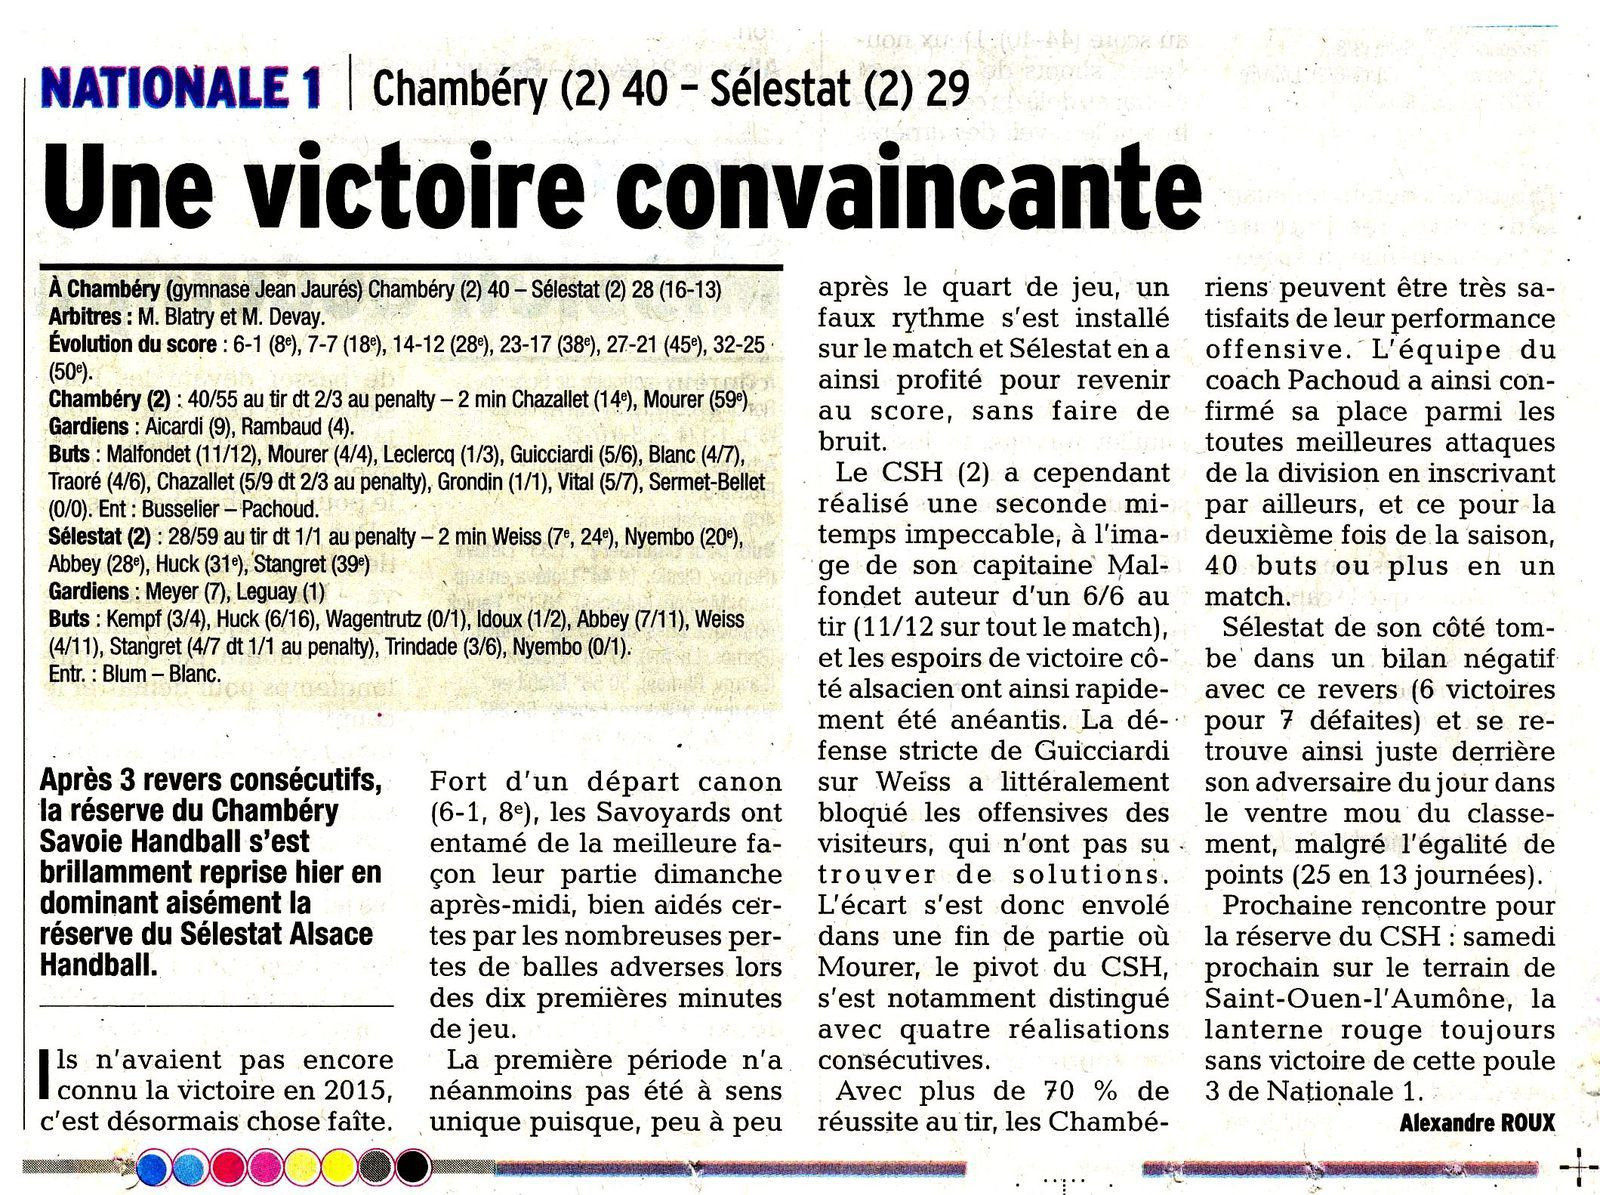 N1 article DL CHAMBERY2 - SELESTAT 2